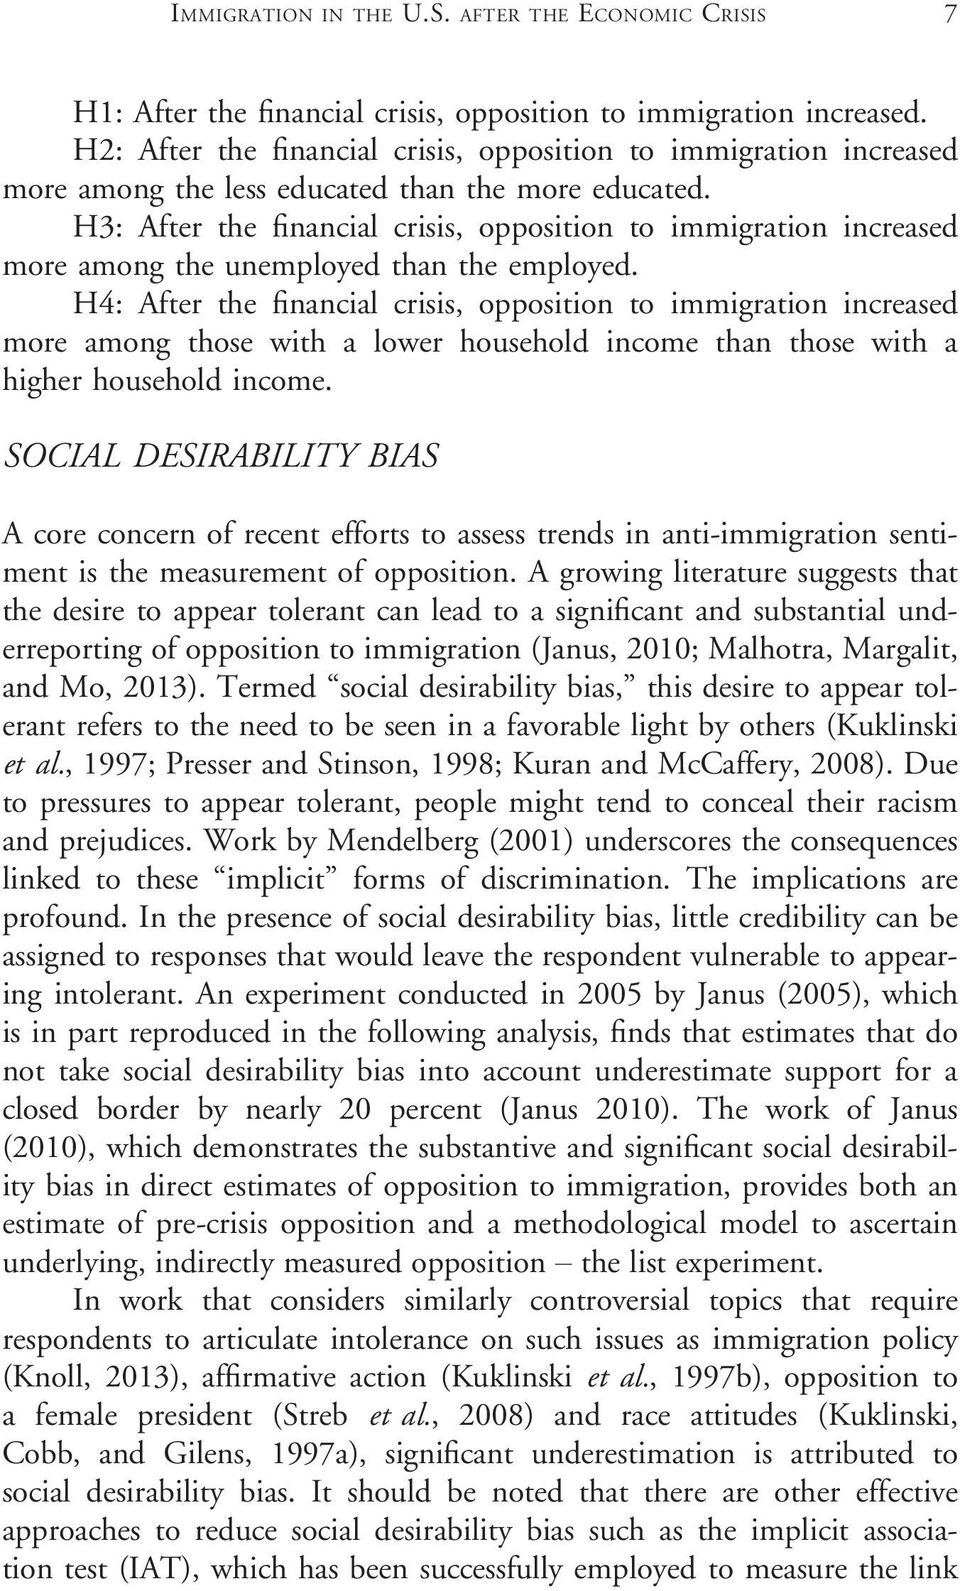 H3: After the financial crisis, opposition to immigration increased more among the unemployed than the employed.